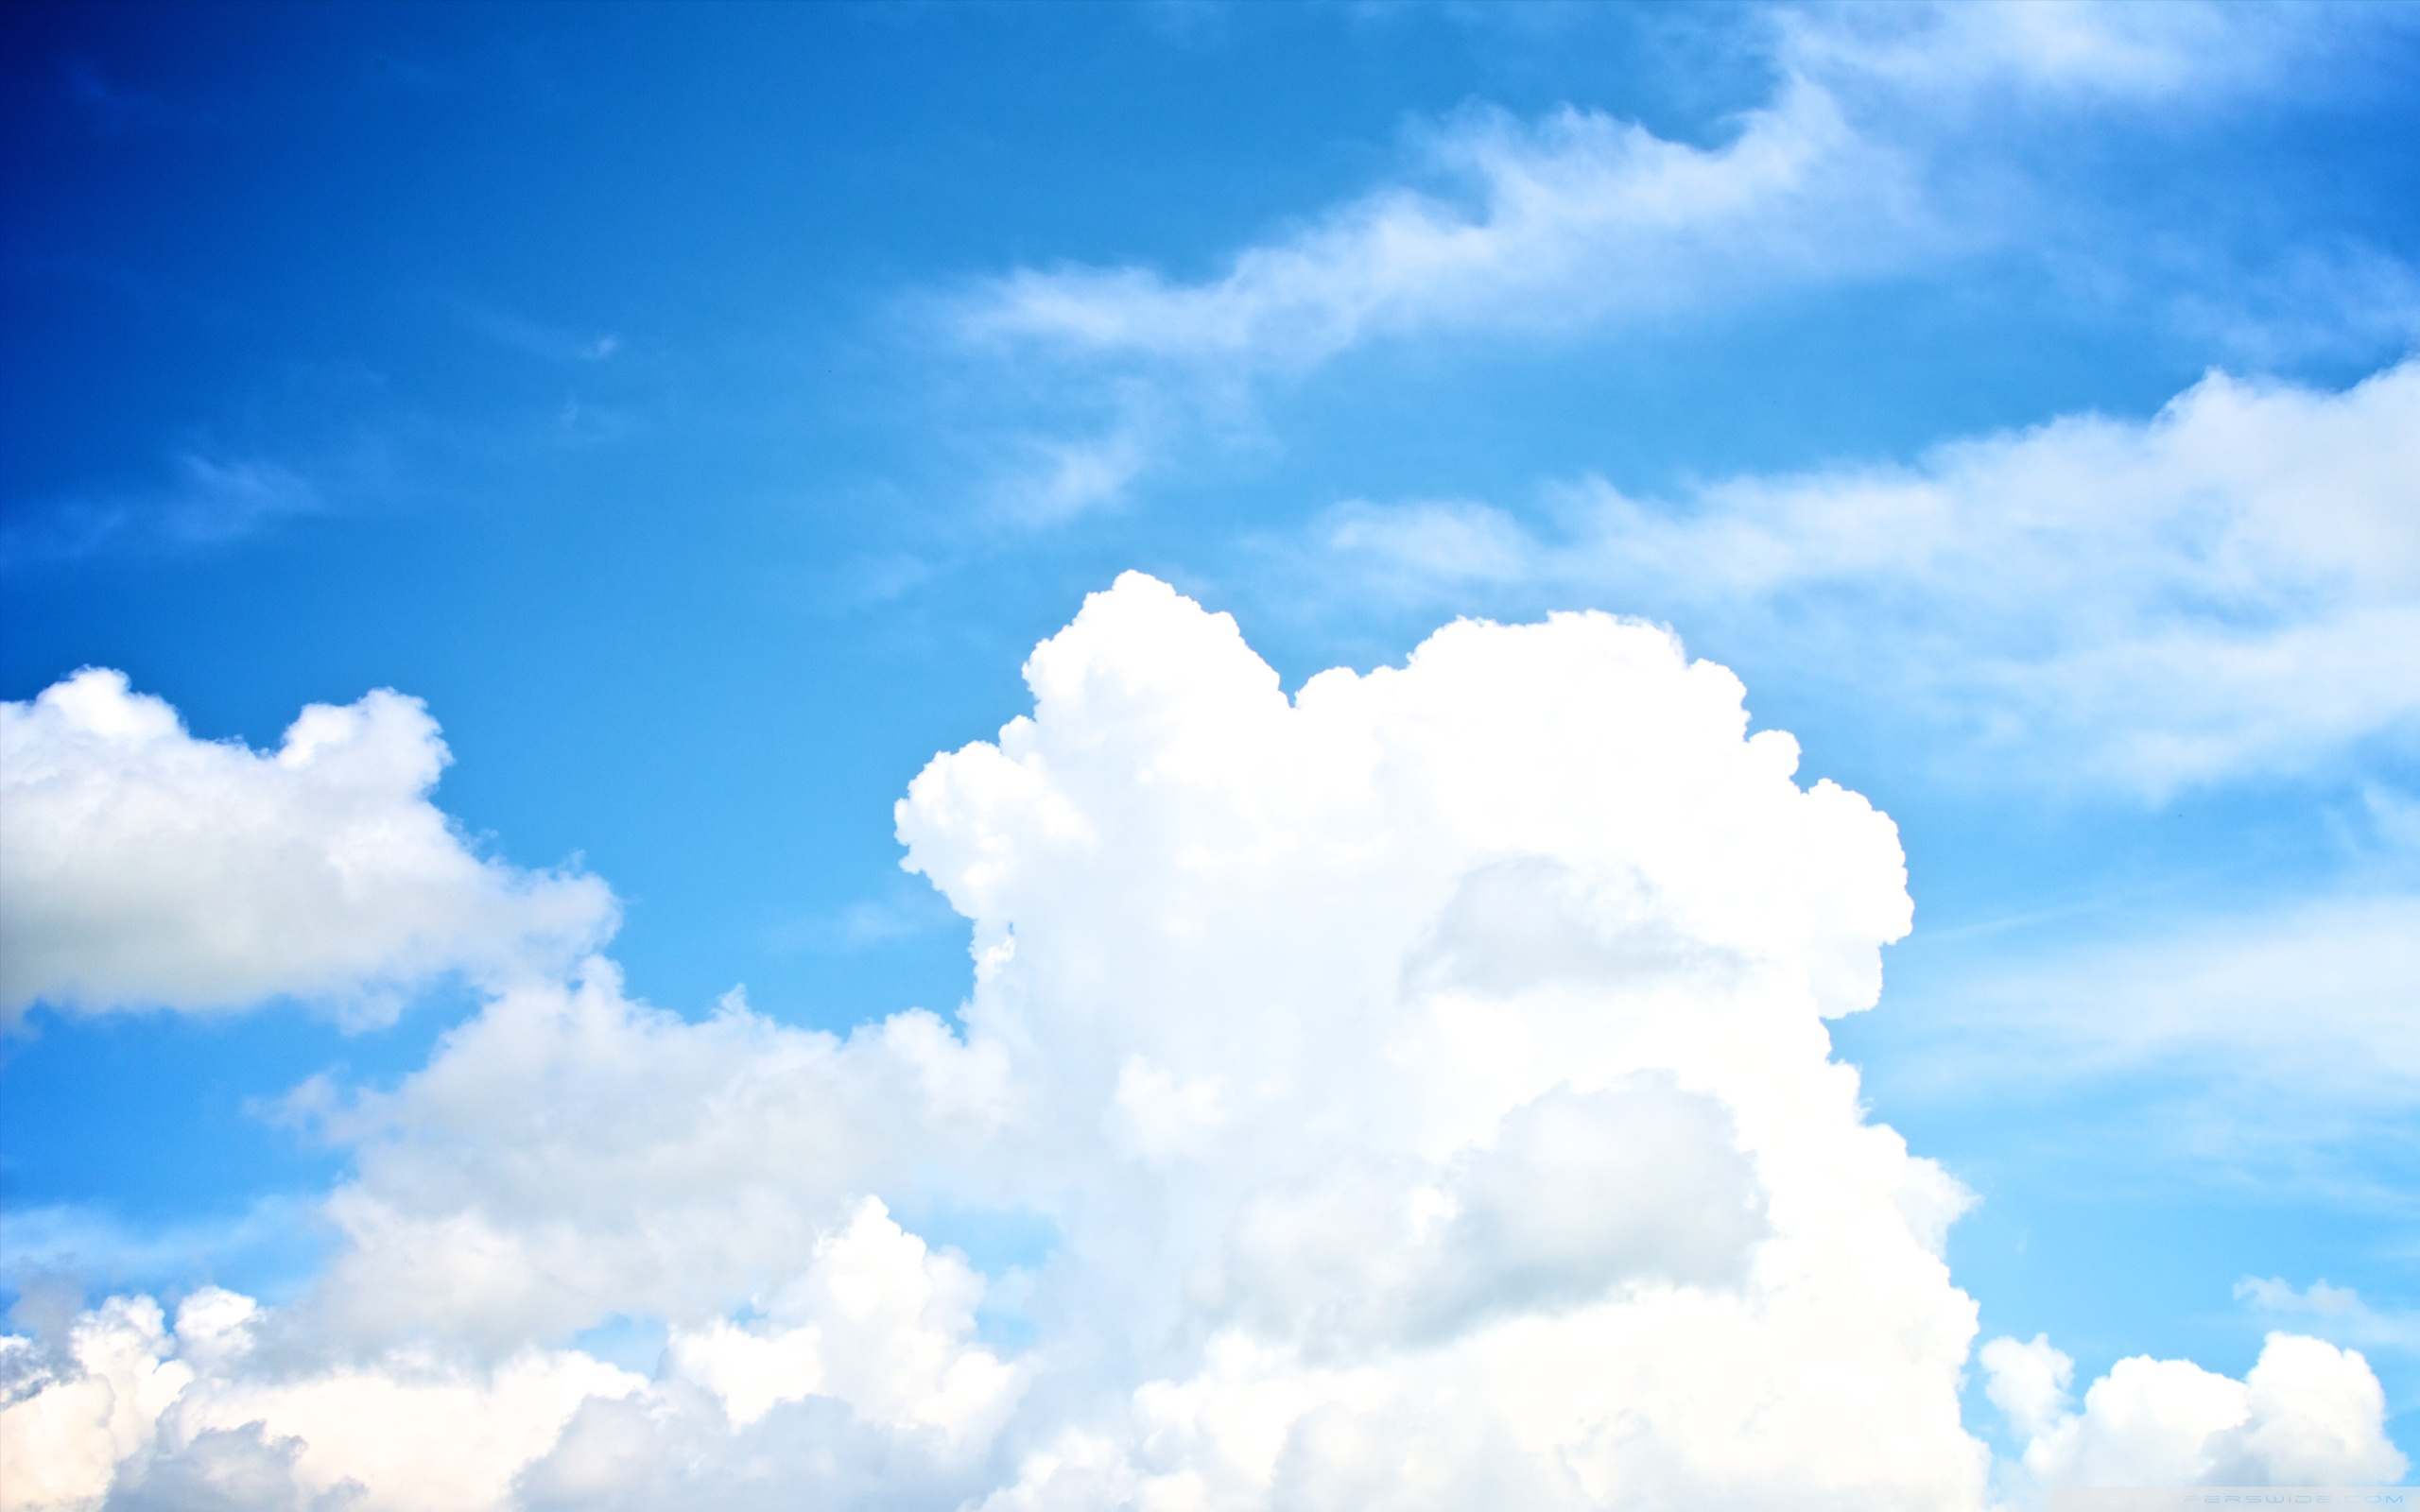 Free Download White Clouds In The Sky 4k Hd Desktop Wallpaper For 4k Ultra Hd 2560x1600 For Your Desktop Mobile Tablet Explore 29 Blue Sky With Clouds Wallpapers Blue